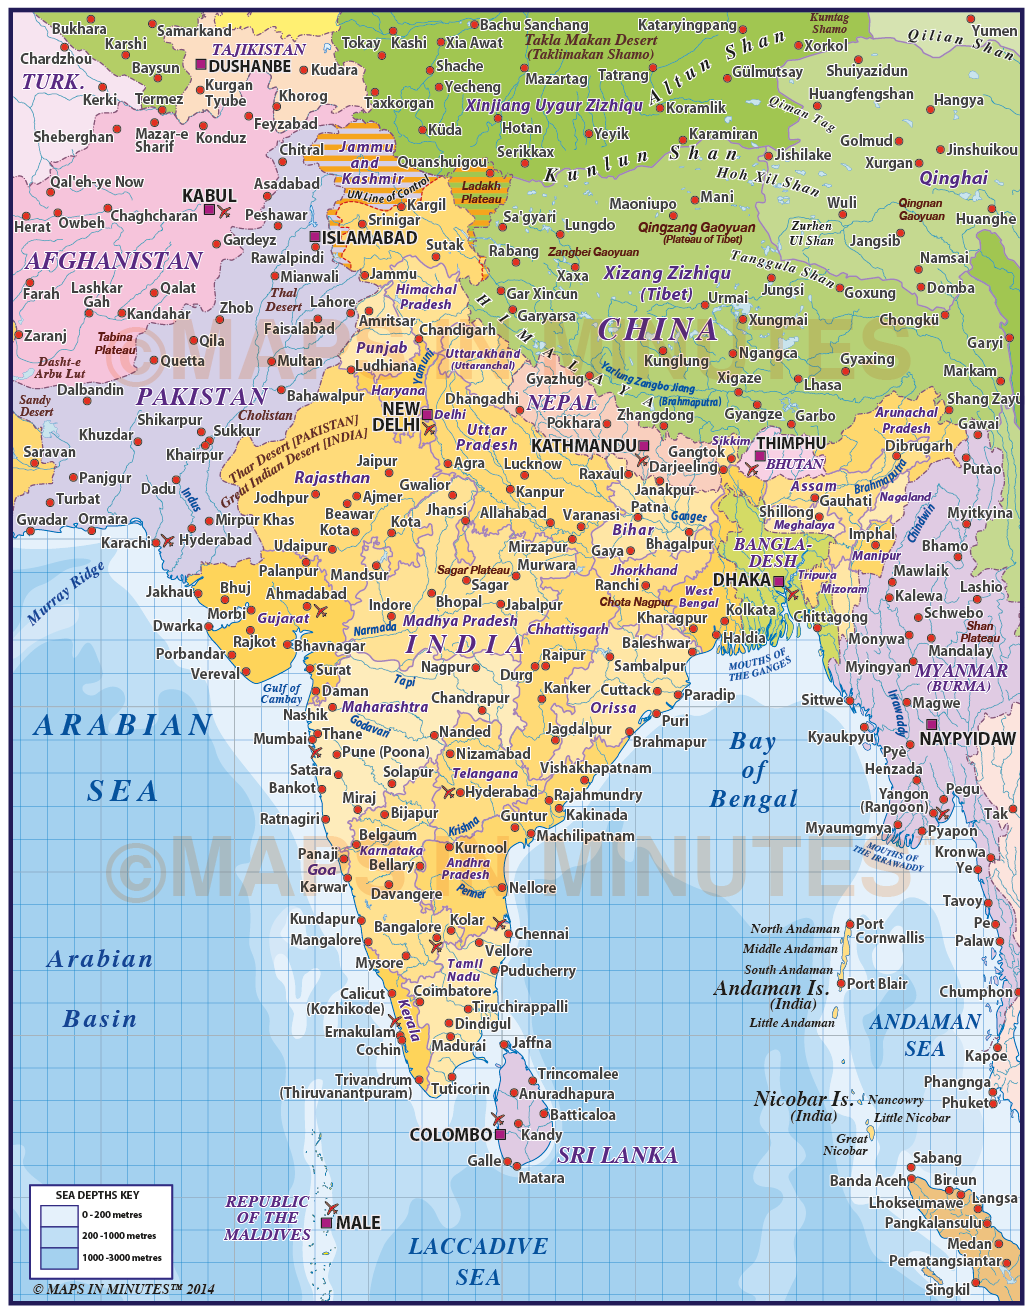 Vector india states level political map plus sea contours 110m digital vector india states political map plus sea contours 110m scale gumiabroncs Choice Image